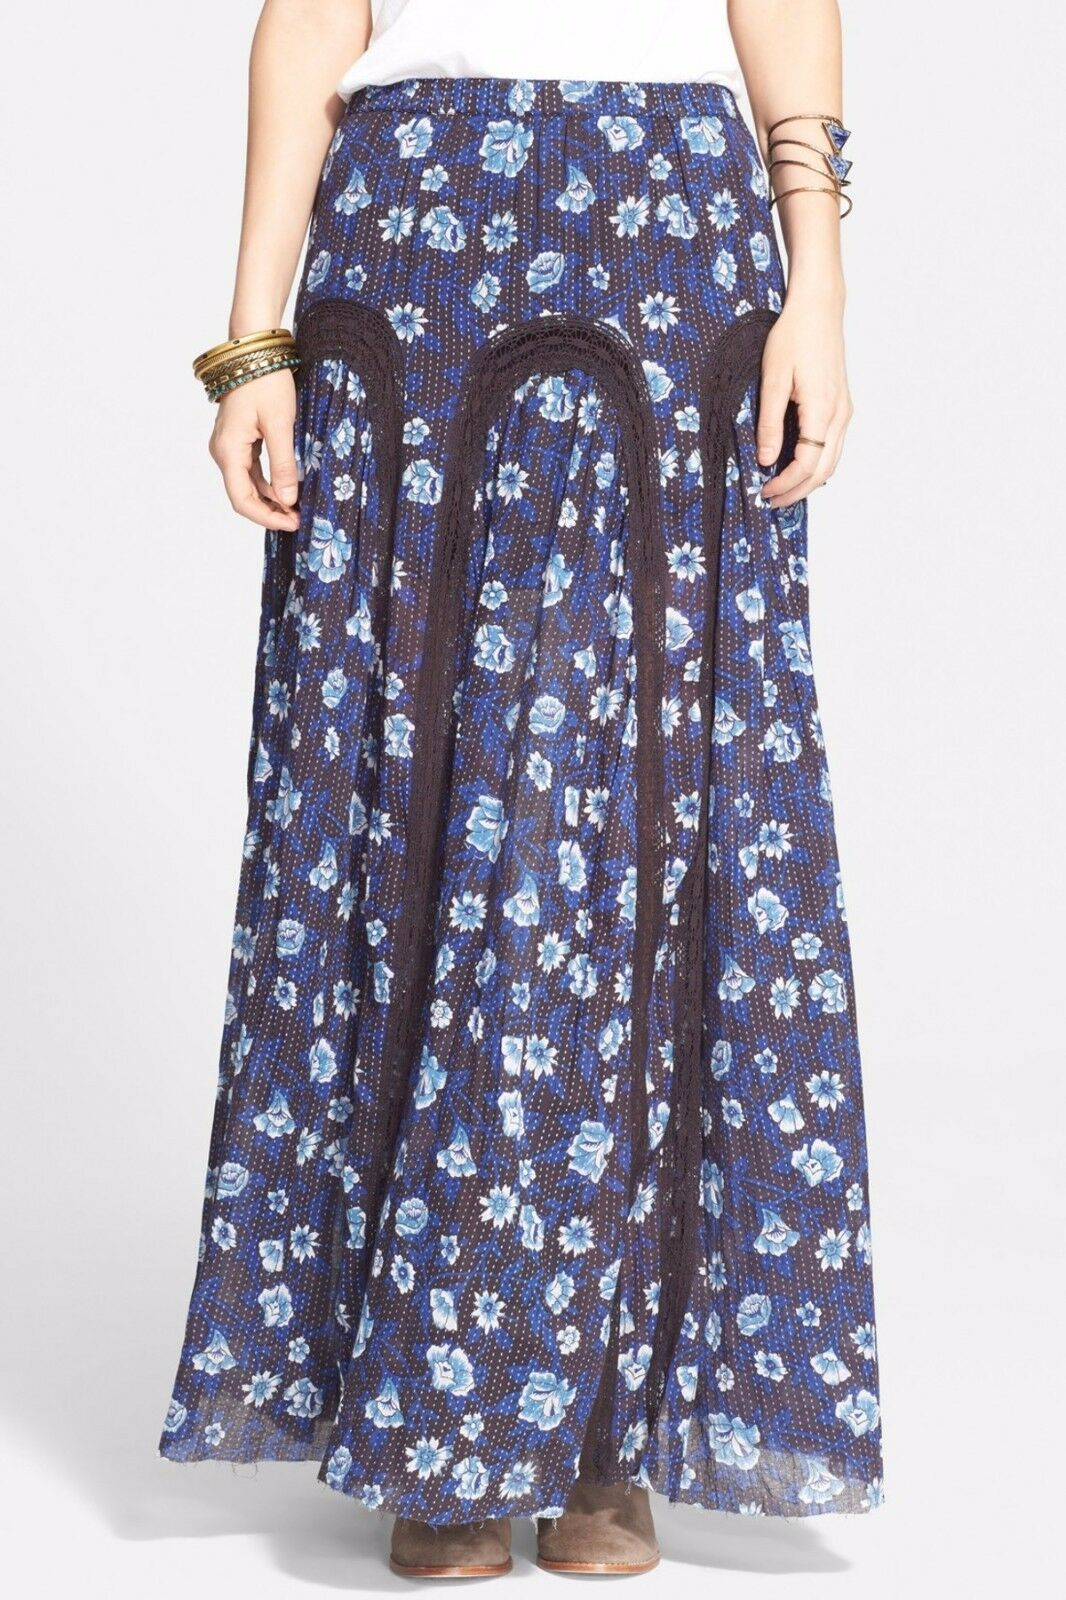 Free People  Zoe  bluee Indigo Combo Floral Cotton Maxi Skirt OB426559 -   148